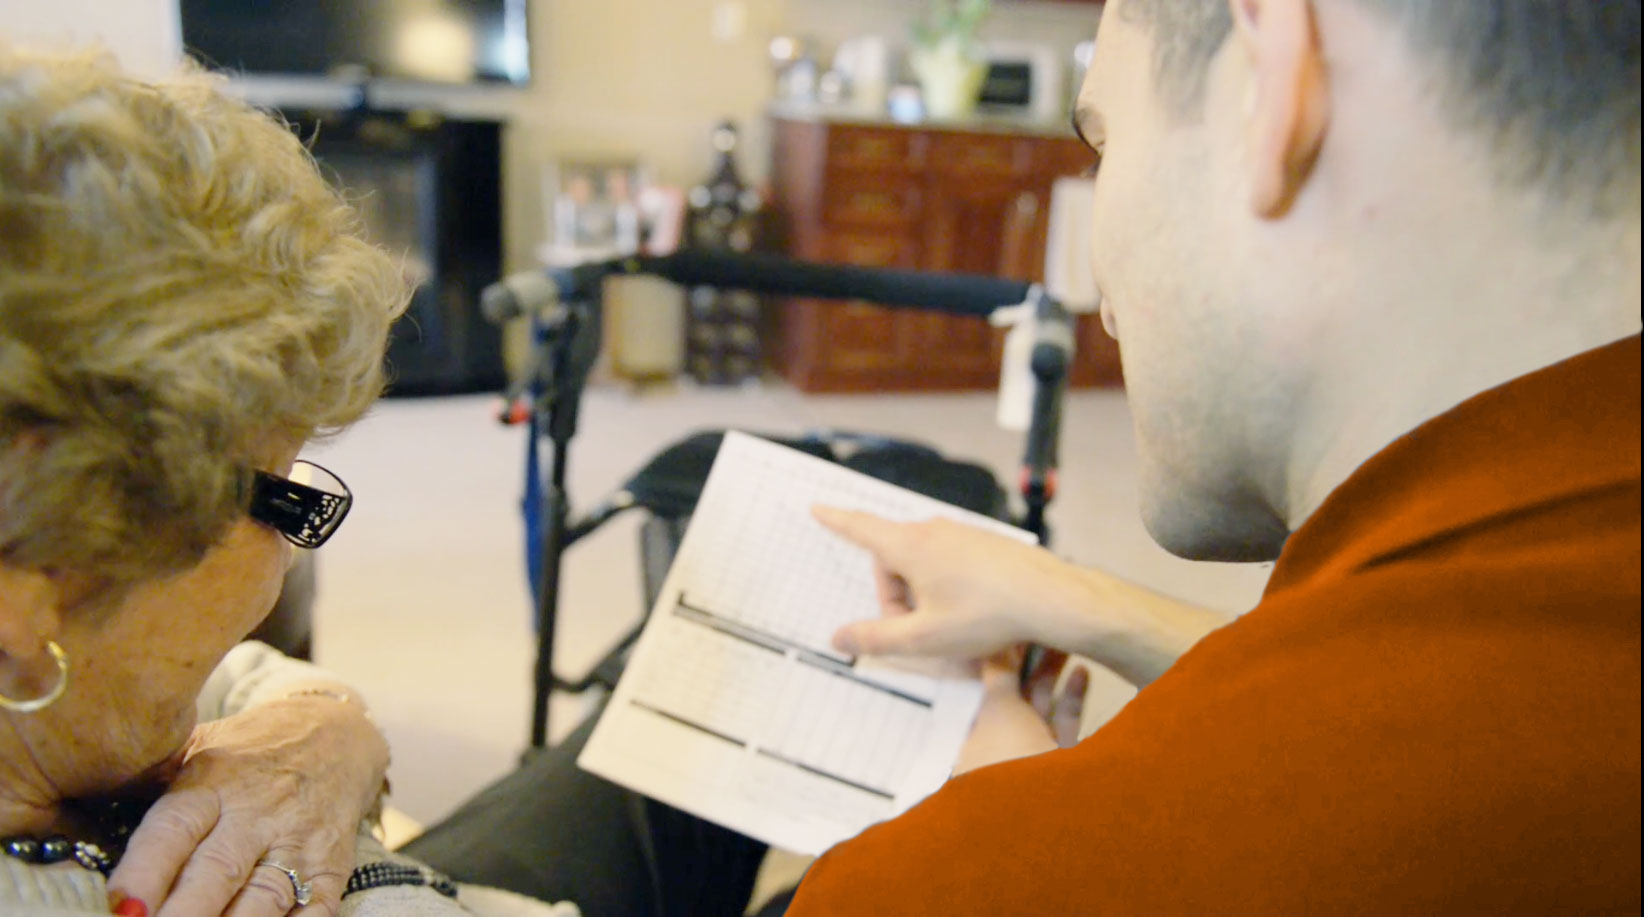 Patient getting his hearing testing in his own home by an Audiologist.